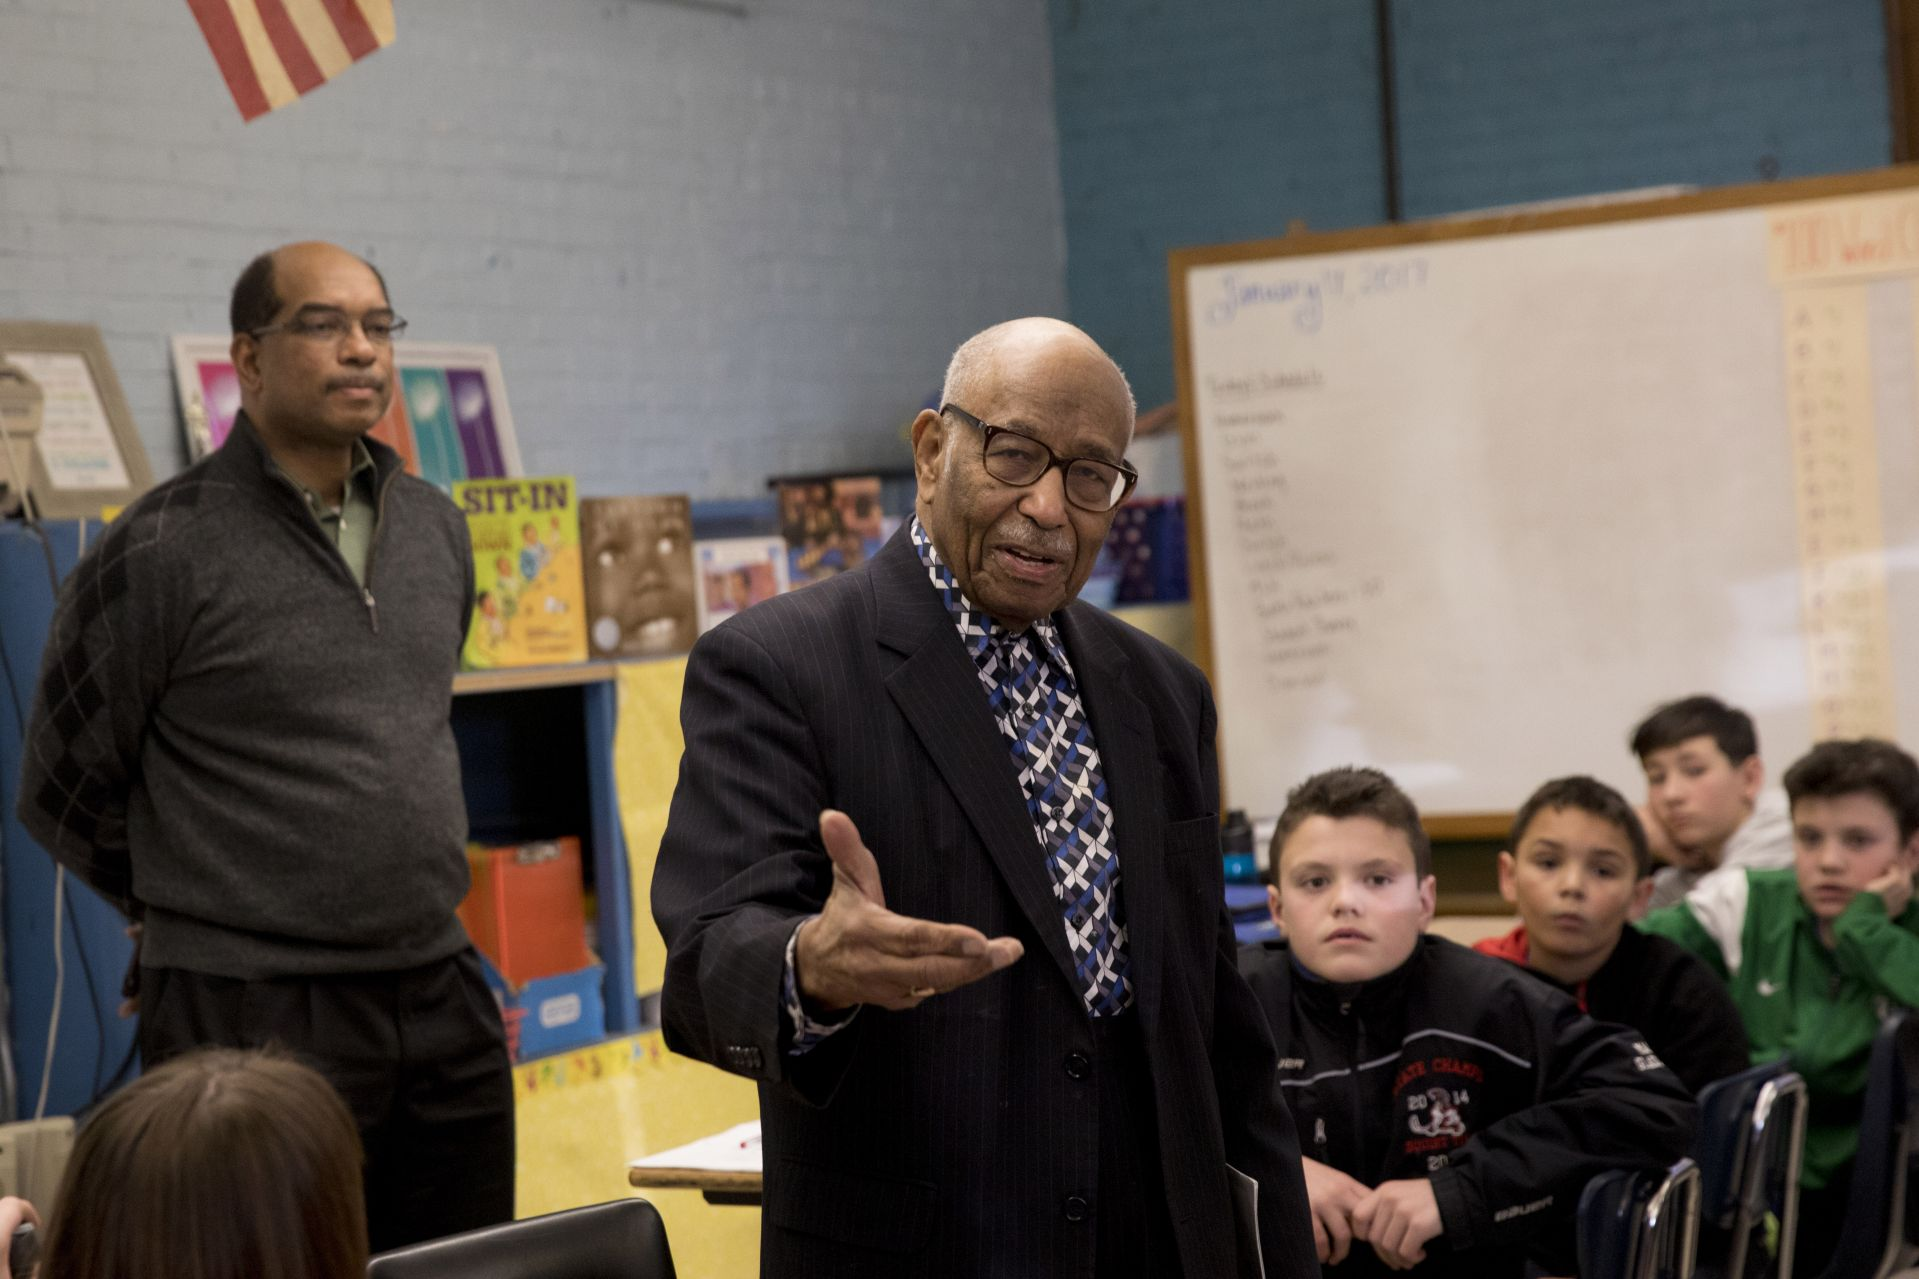 Sixth-graders at Martel Elementary School were surprised during a Martin Luther King Jr. read-in Tuesday when civil rights activist James Reese, 93, walked into the classroom.  Sitting with students and their Bates College reading partners, Reese told them what his life was like before segregation was outlawed in 1964.  Reese and his wife, Neola, 89, came to Martel with their son, James Reese, an associate dean at Bates College. Neola and Jim raised three children in Knoxville, Tennessee. The elder Reese met Dr. King in 1960 when he spoke at the college where Reese was chaplain.  See full Sun Journal Story http://www.sunjournal.com/news/lewiston-auburn/0001/11/30/lewiston-pupils-get-civil-rights-lesson-1960s-activist/2058421